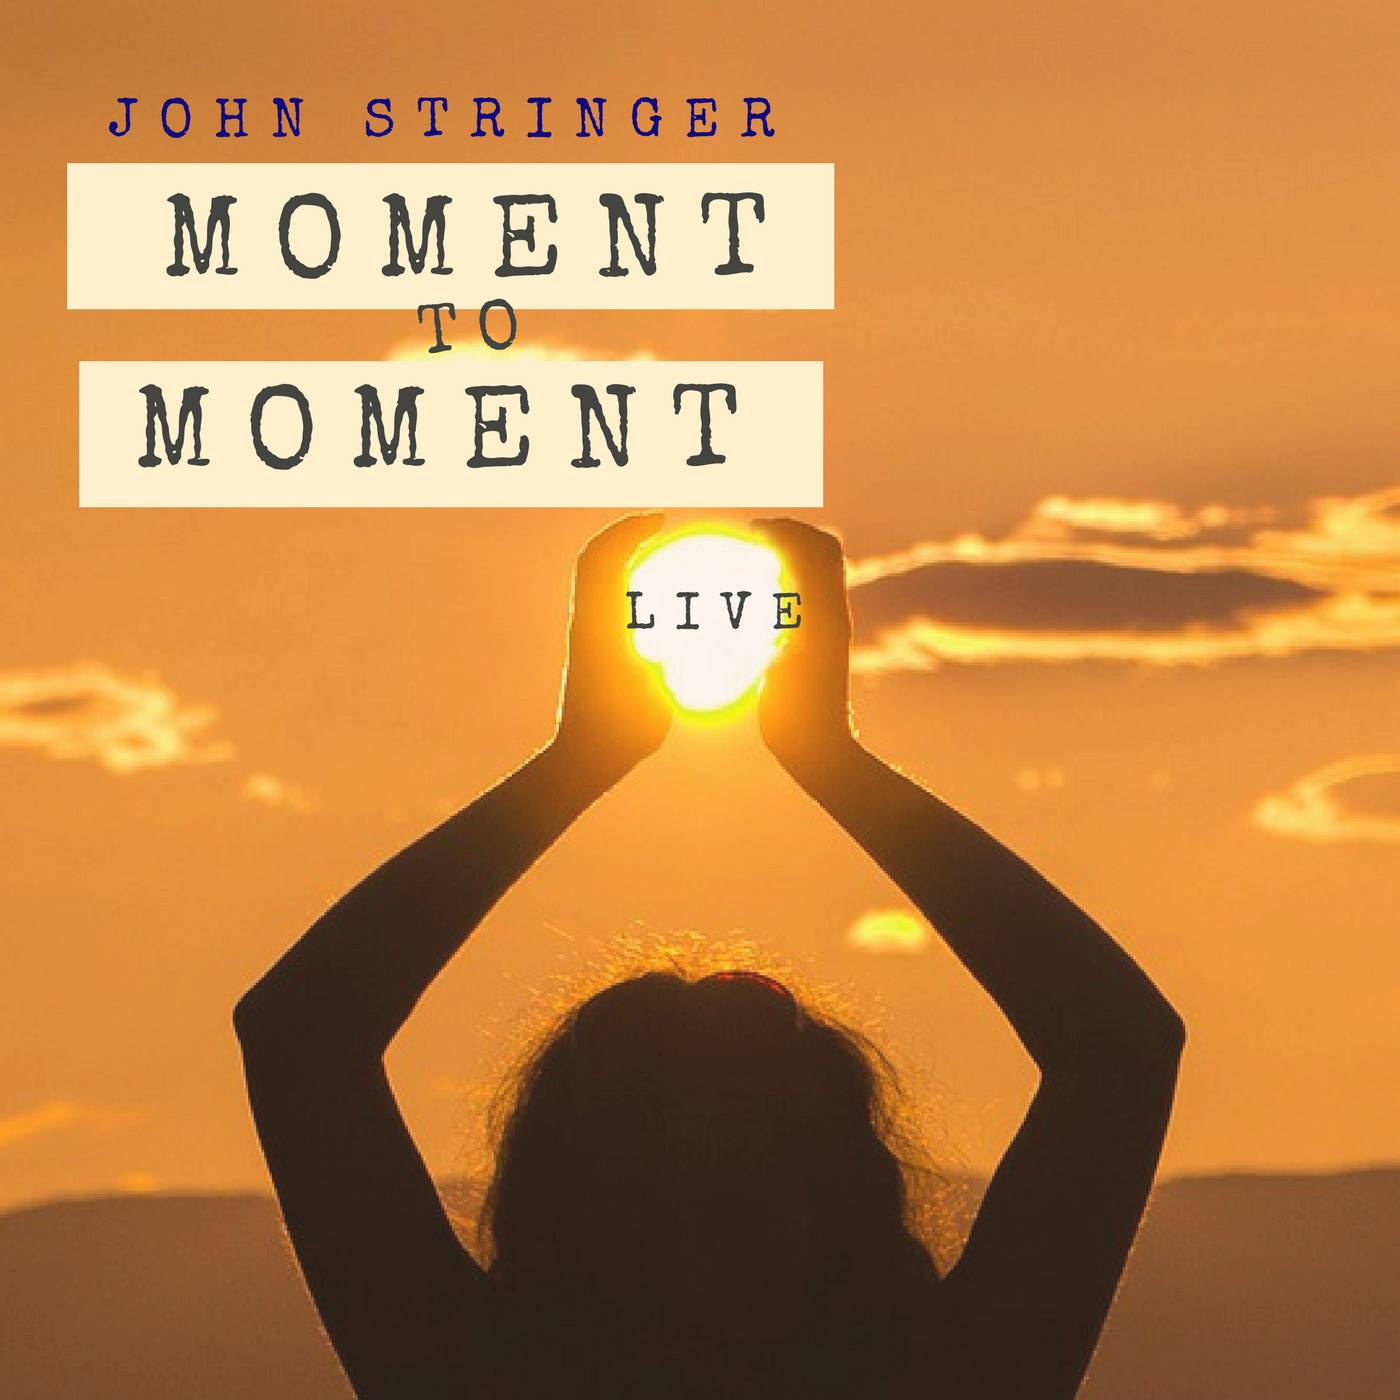 Moment to Moment (Live) Digital CD 820351301027